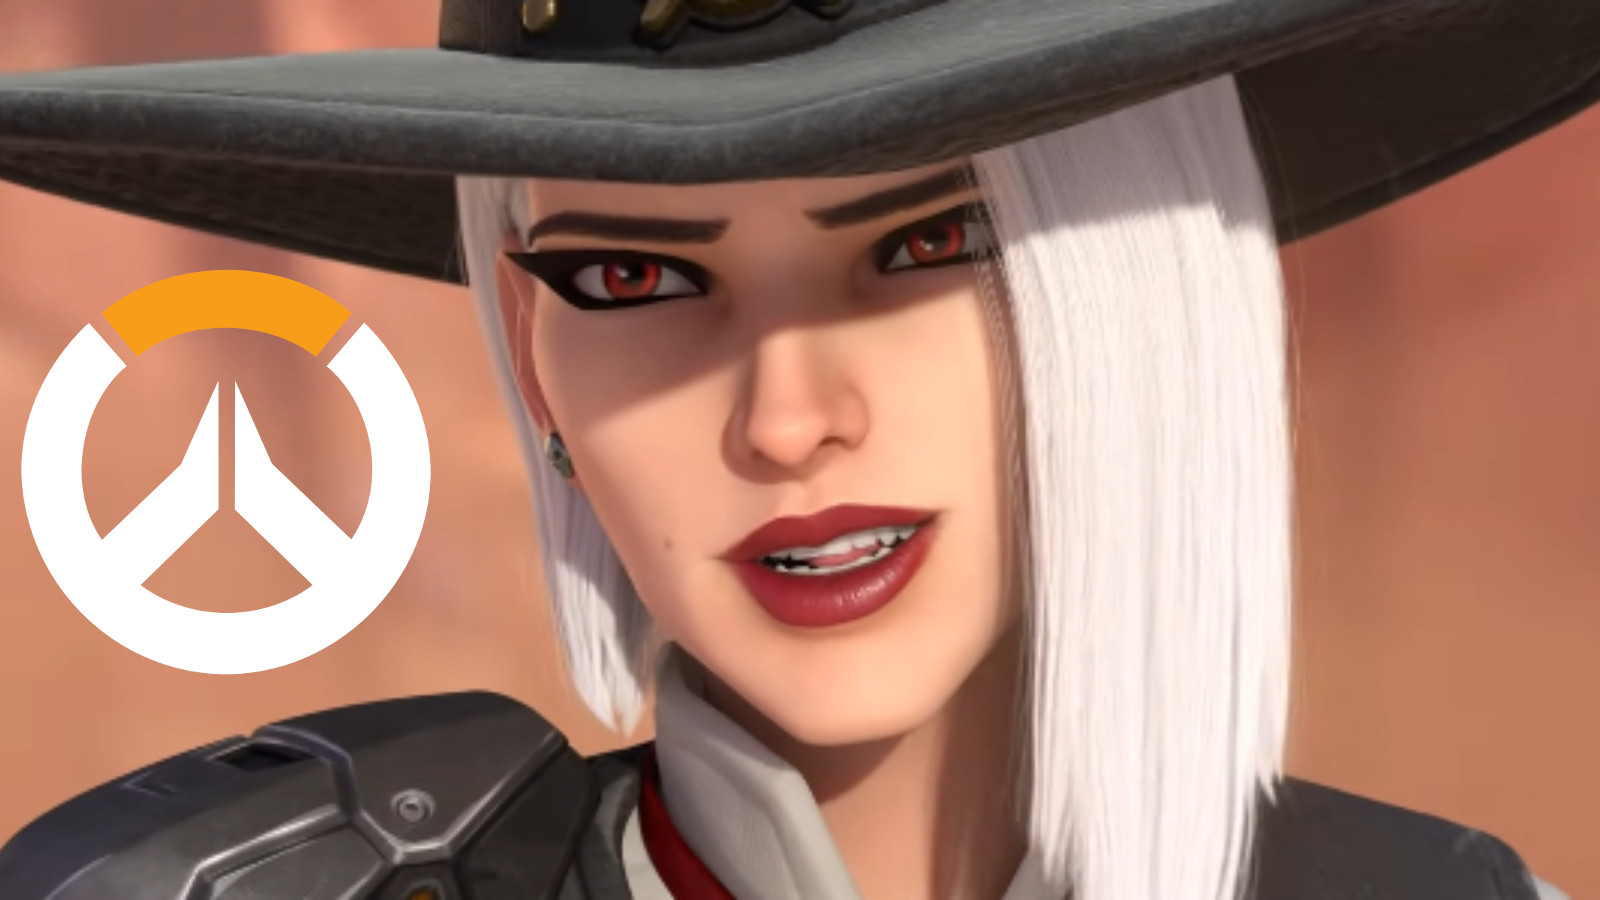 Ashe smiles at McCree